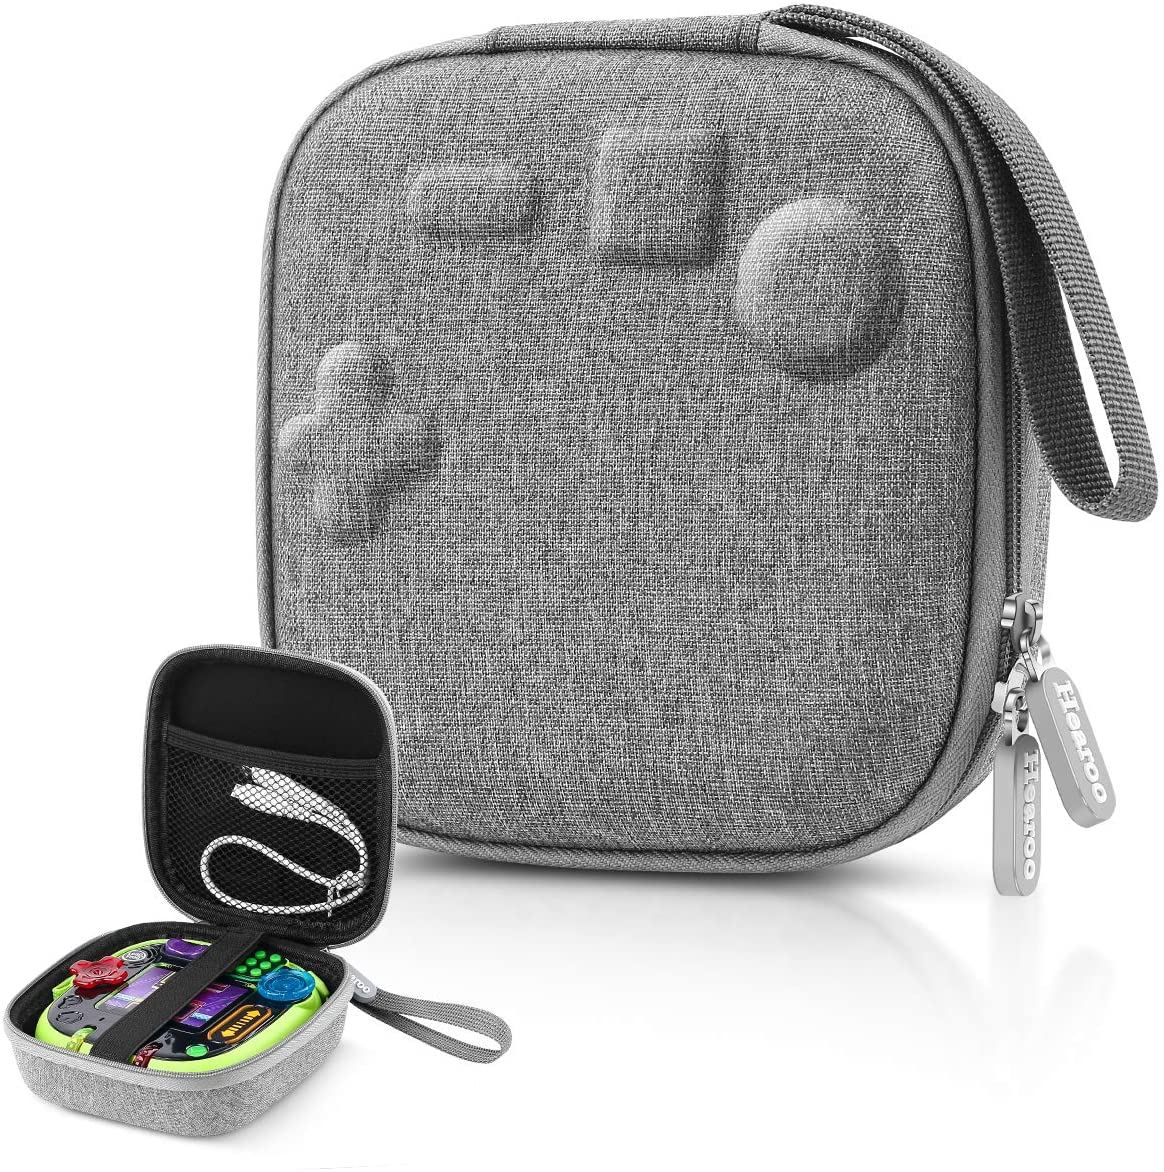 Hearoo Hard Travel Carrying Storage Case for Leapfrog Rockit Twist Handheld Learning Game System (Grey)